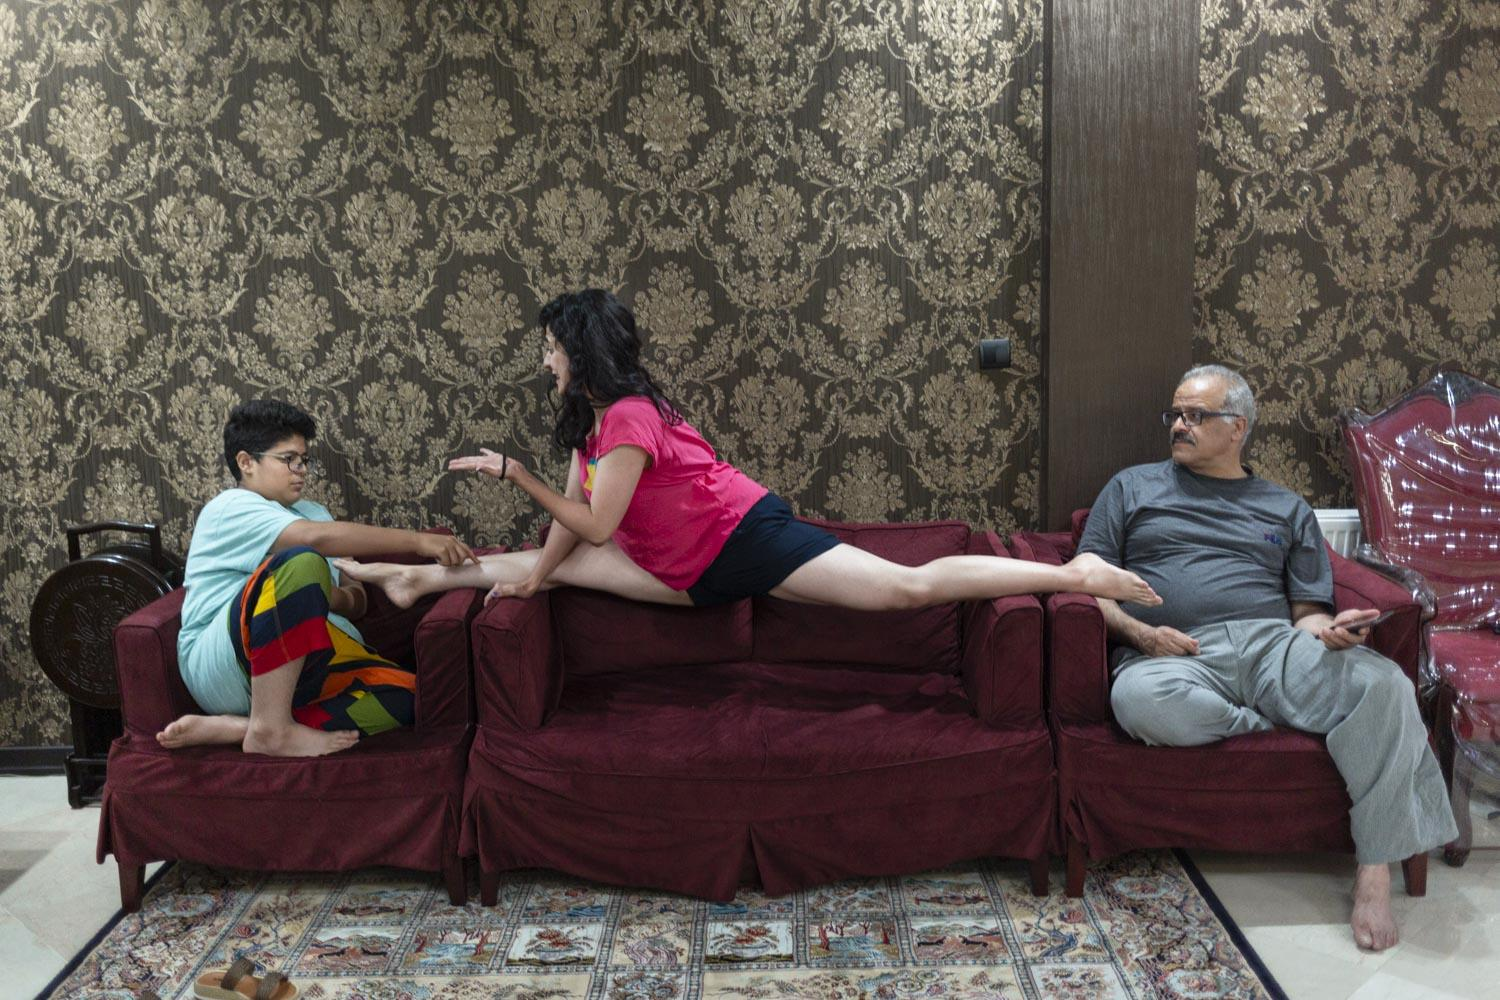 Reyhaneh (22) does a splits on the sofa while her brother tickles her. Reyhaneh dances for ten years. She had to persuade her parents for a long time before she was finally allowed to participate in dance classes five years ago. Meanwhile her parents support Reyhaneh and ask her to dance at family gatherings. However, the dream of fathers seeing their daughters on stage remains unfulfilled in Iran.